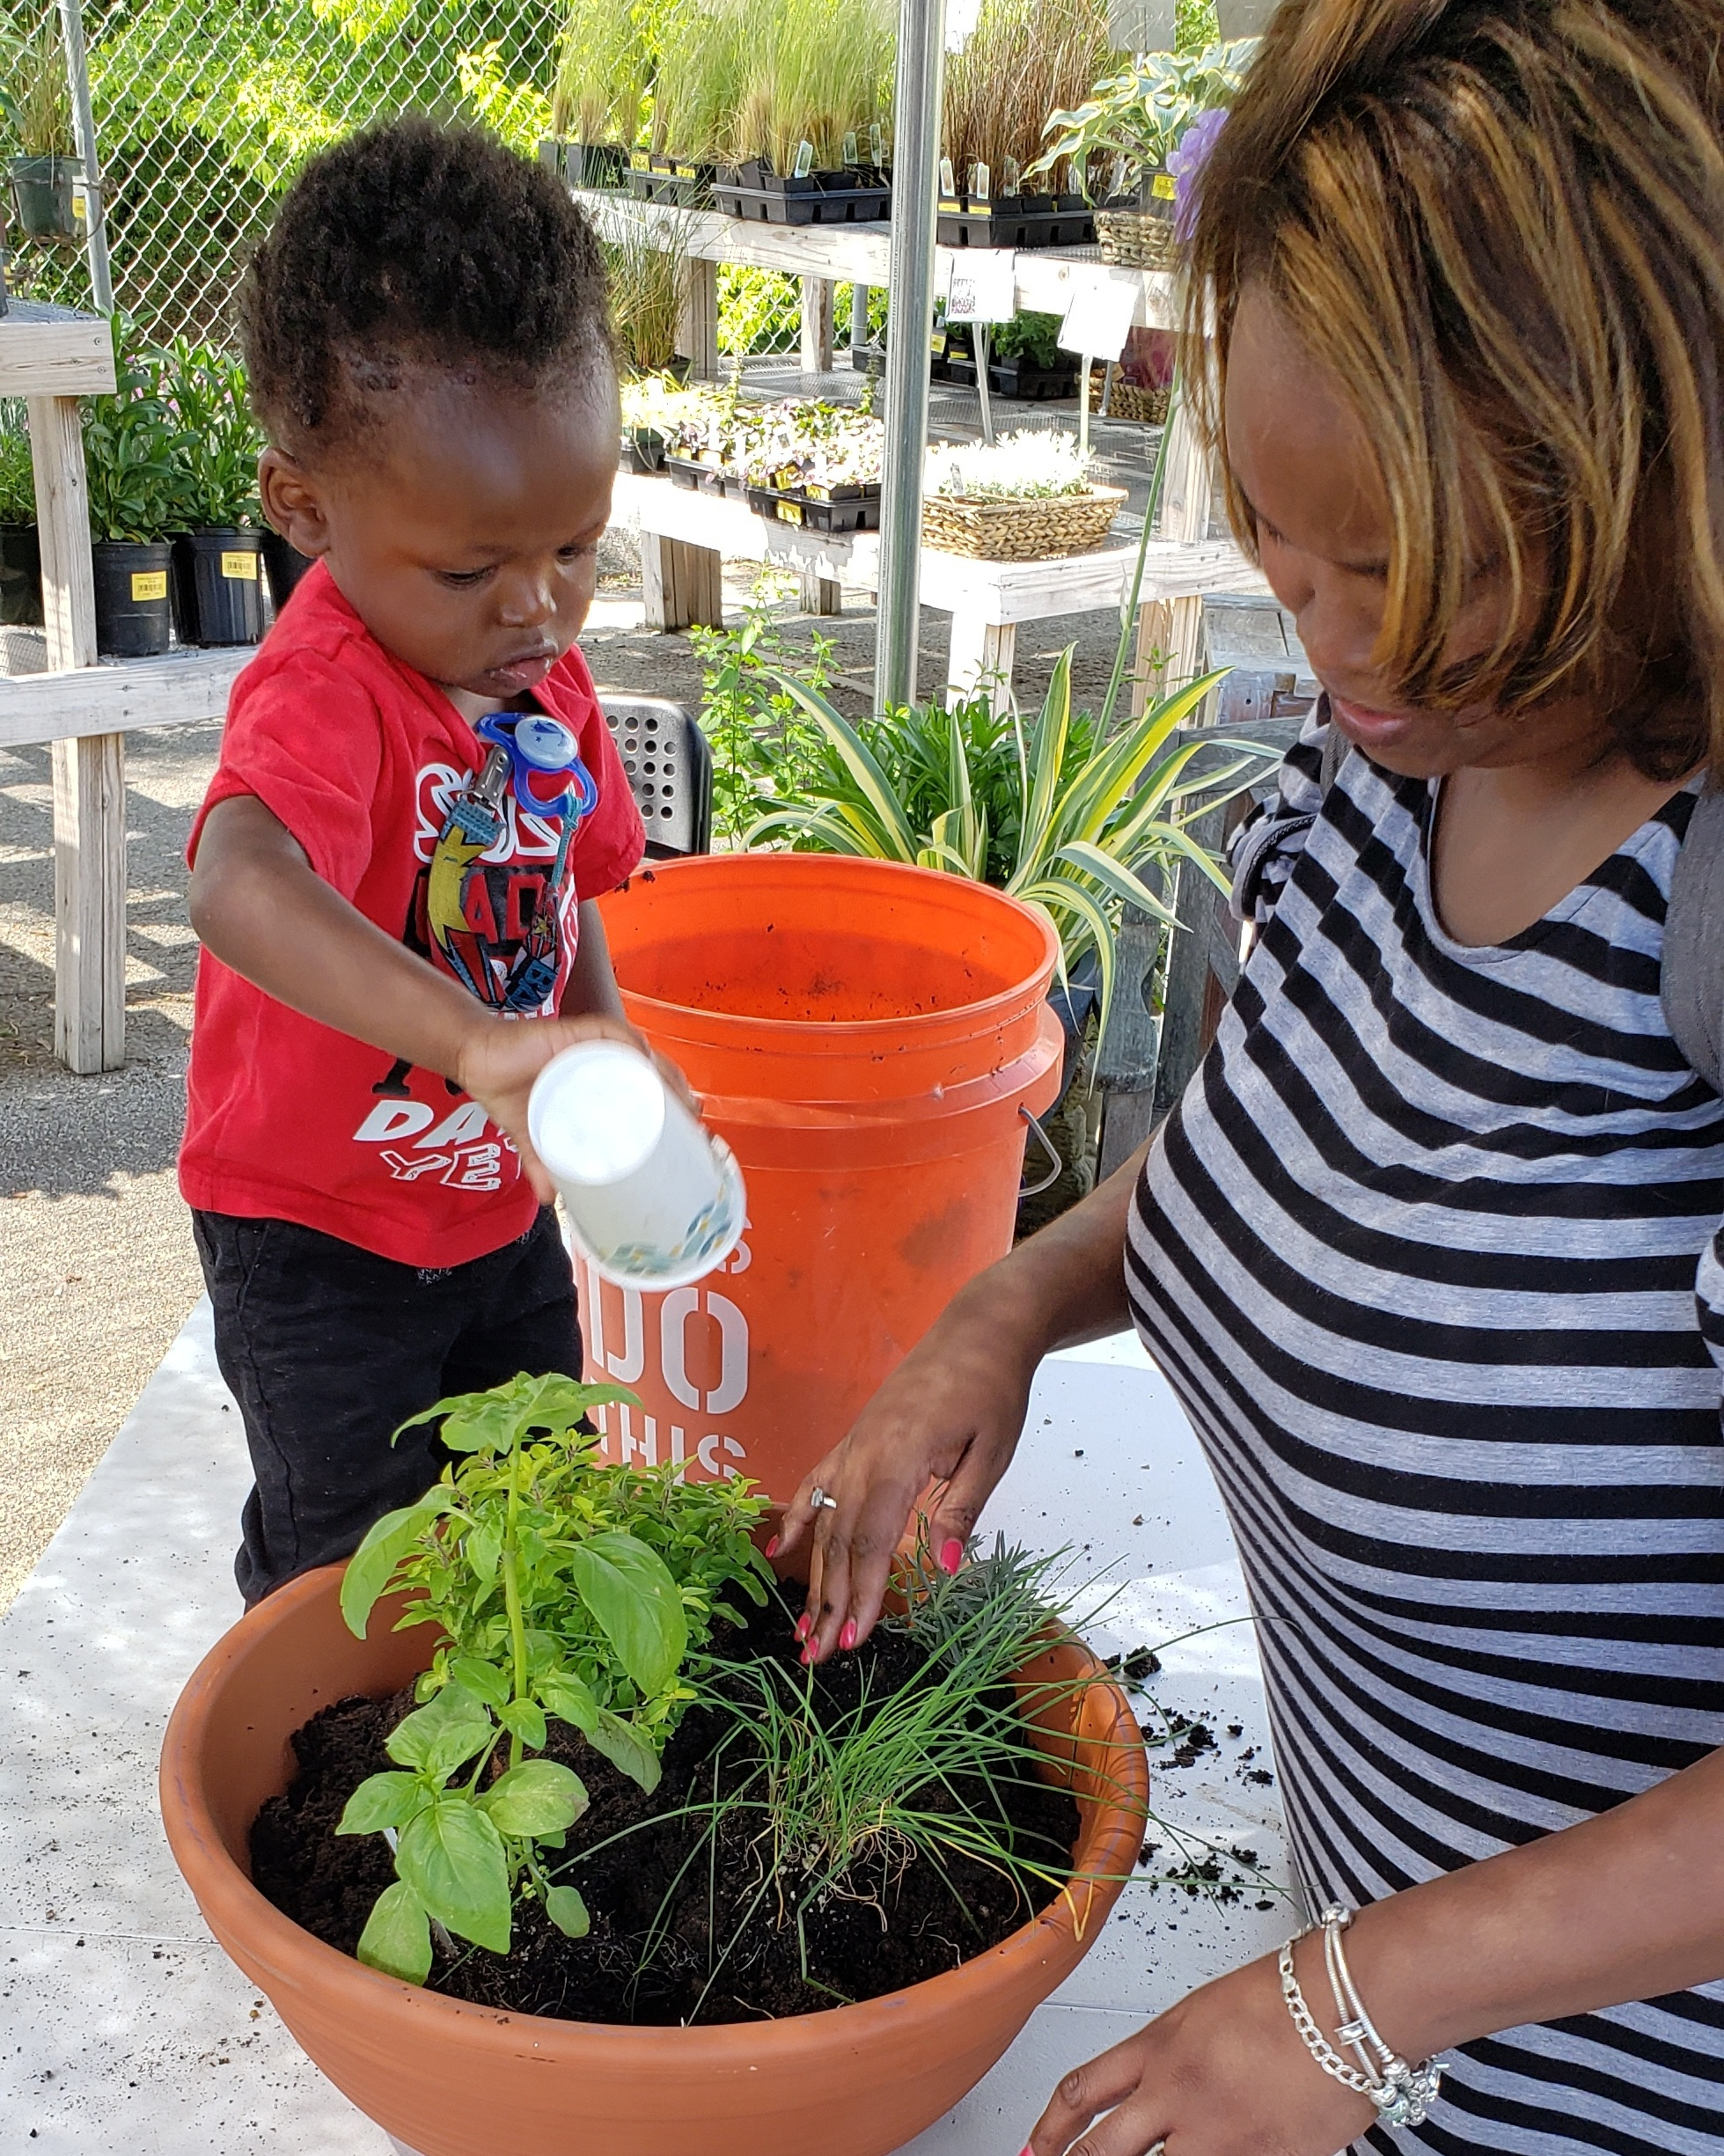 group activities, planting with kids, kids and plants